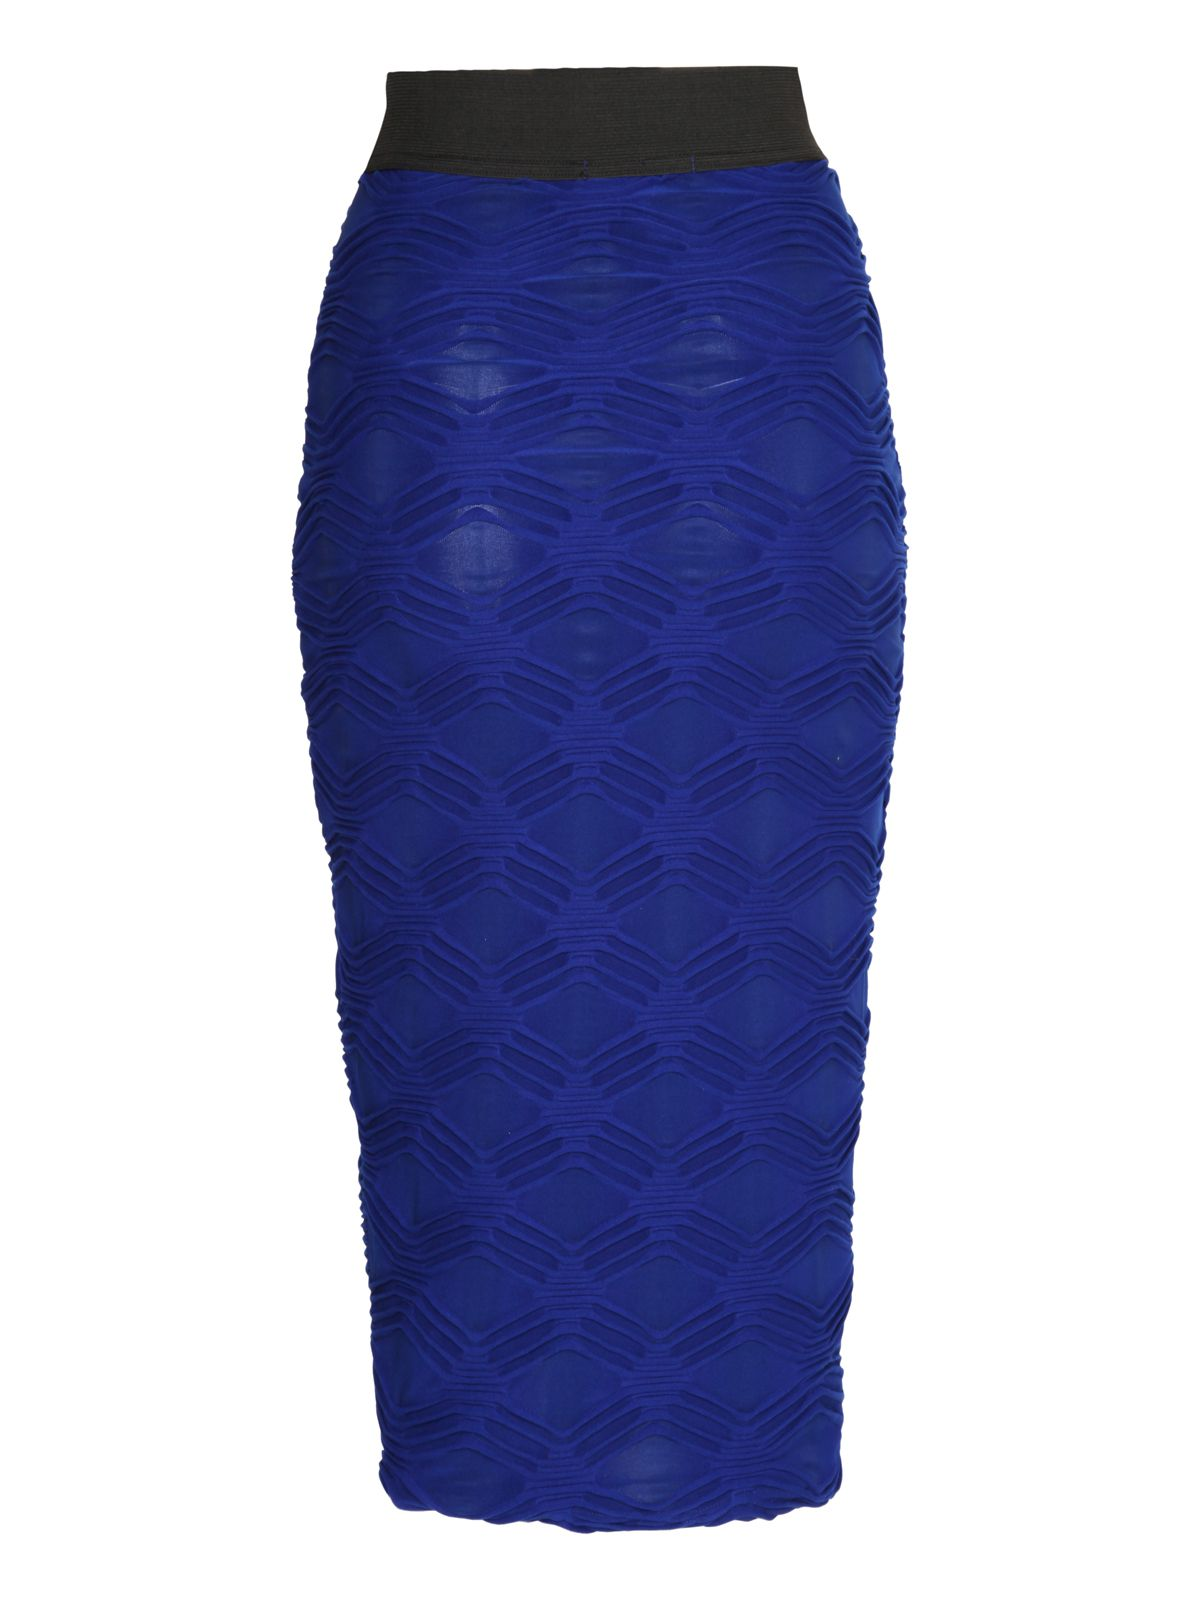 Graphic wave pencil skirt